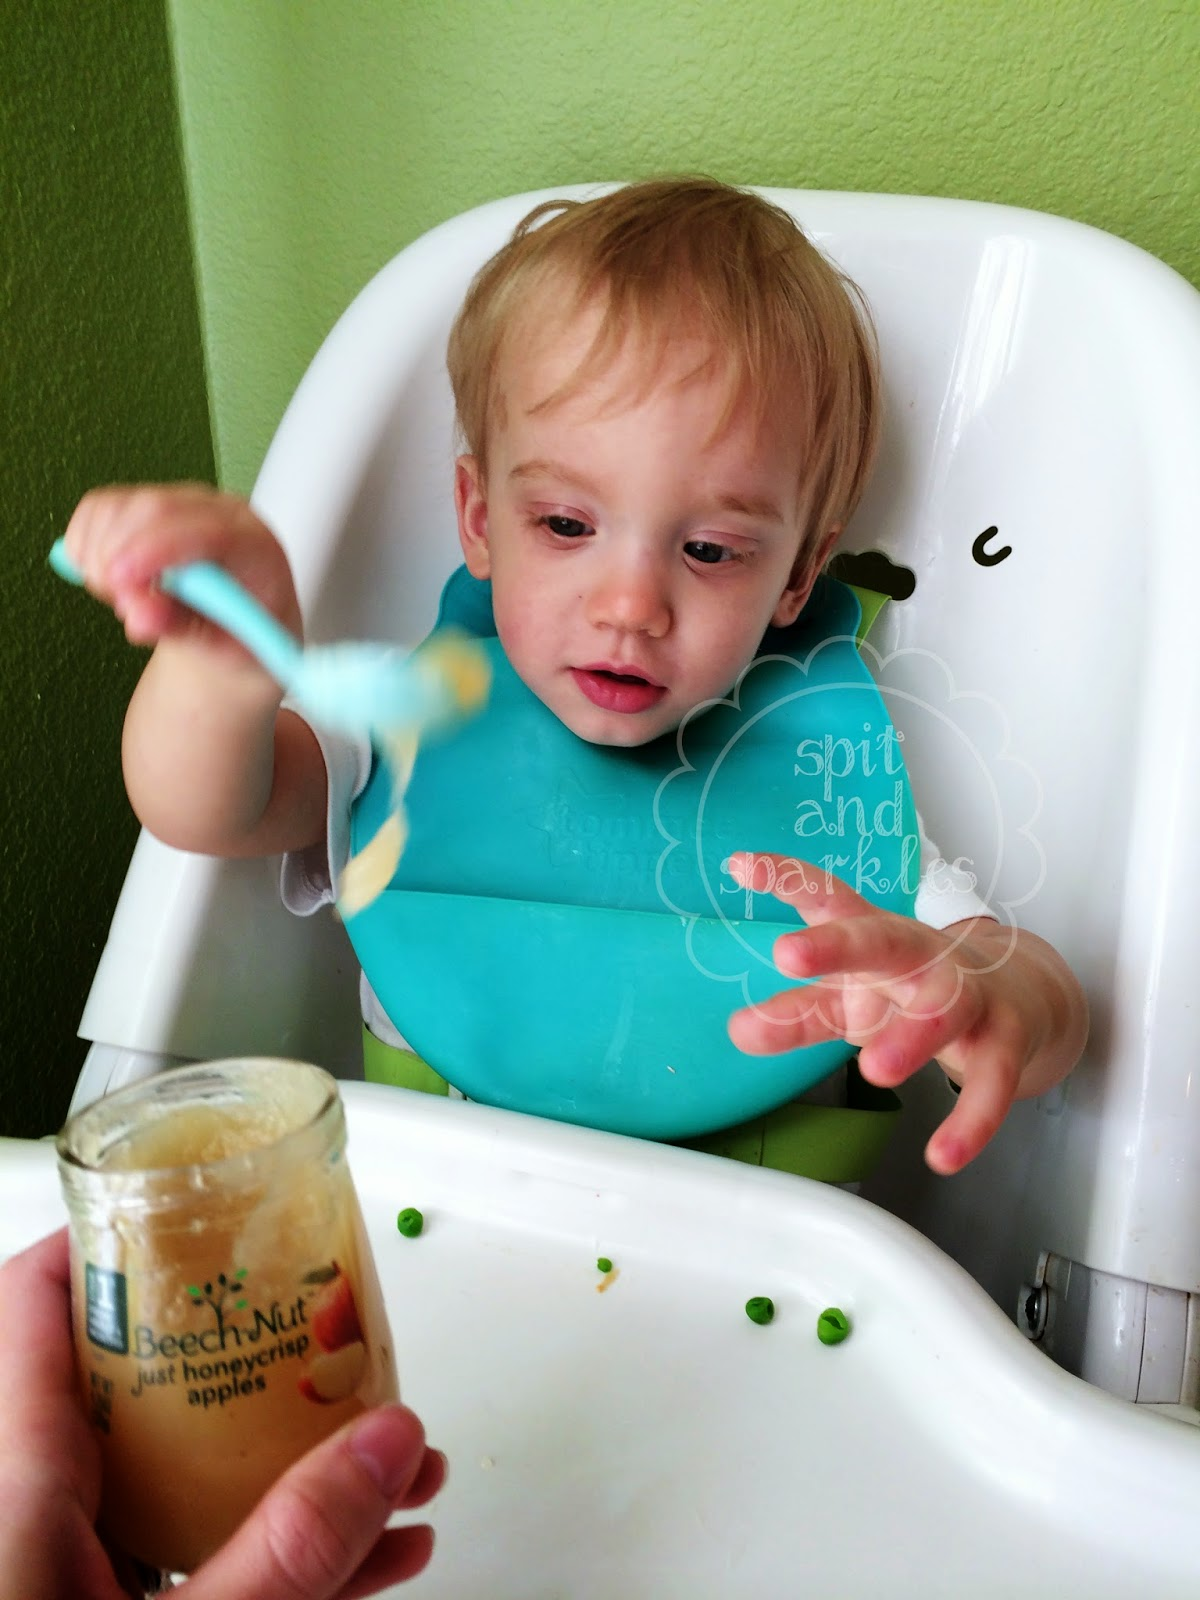 Real Food For Babies By Beech Nut Product Review